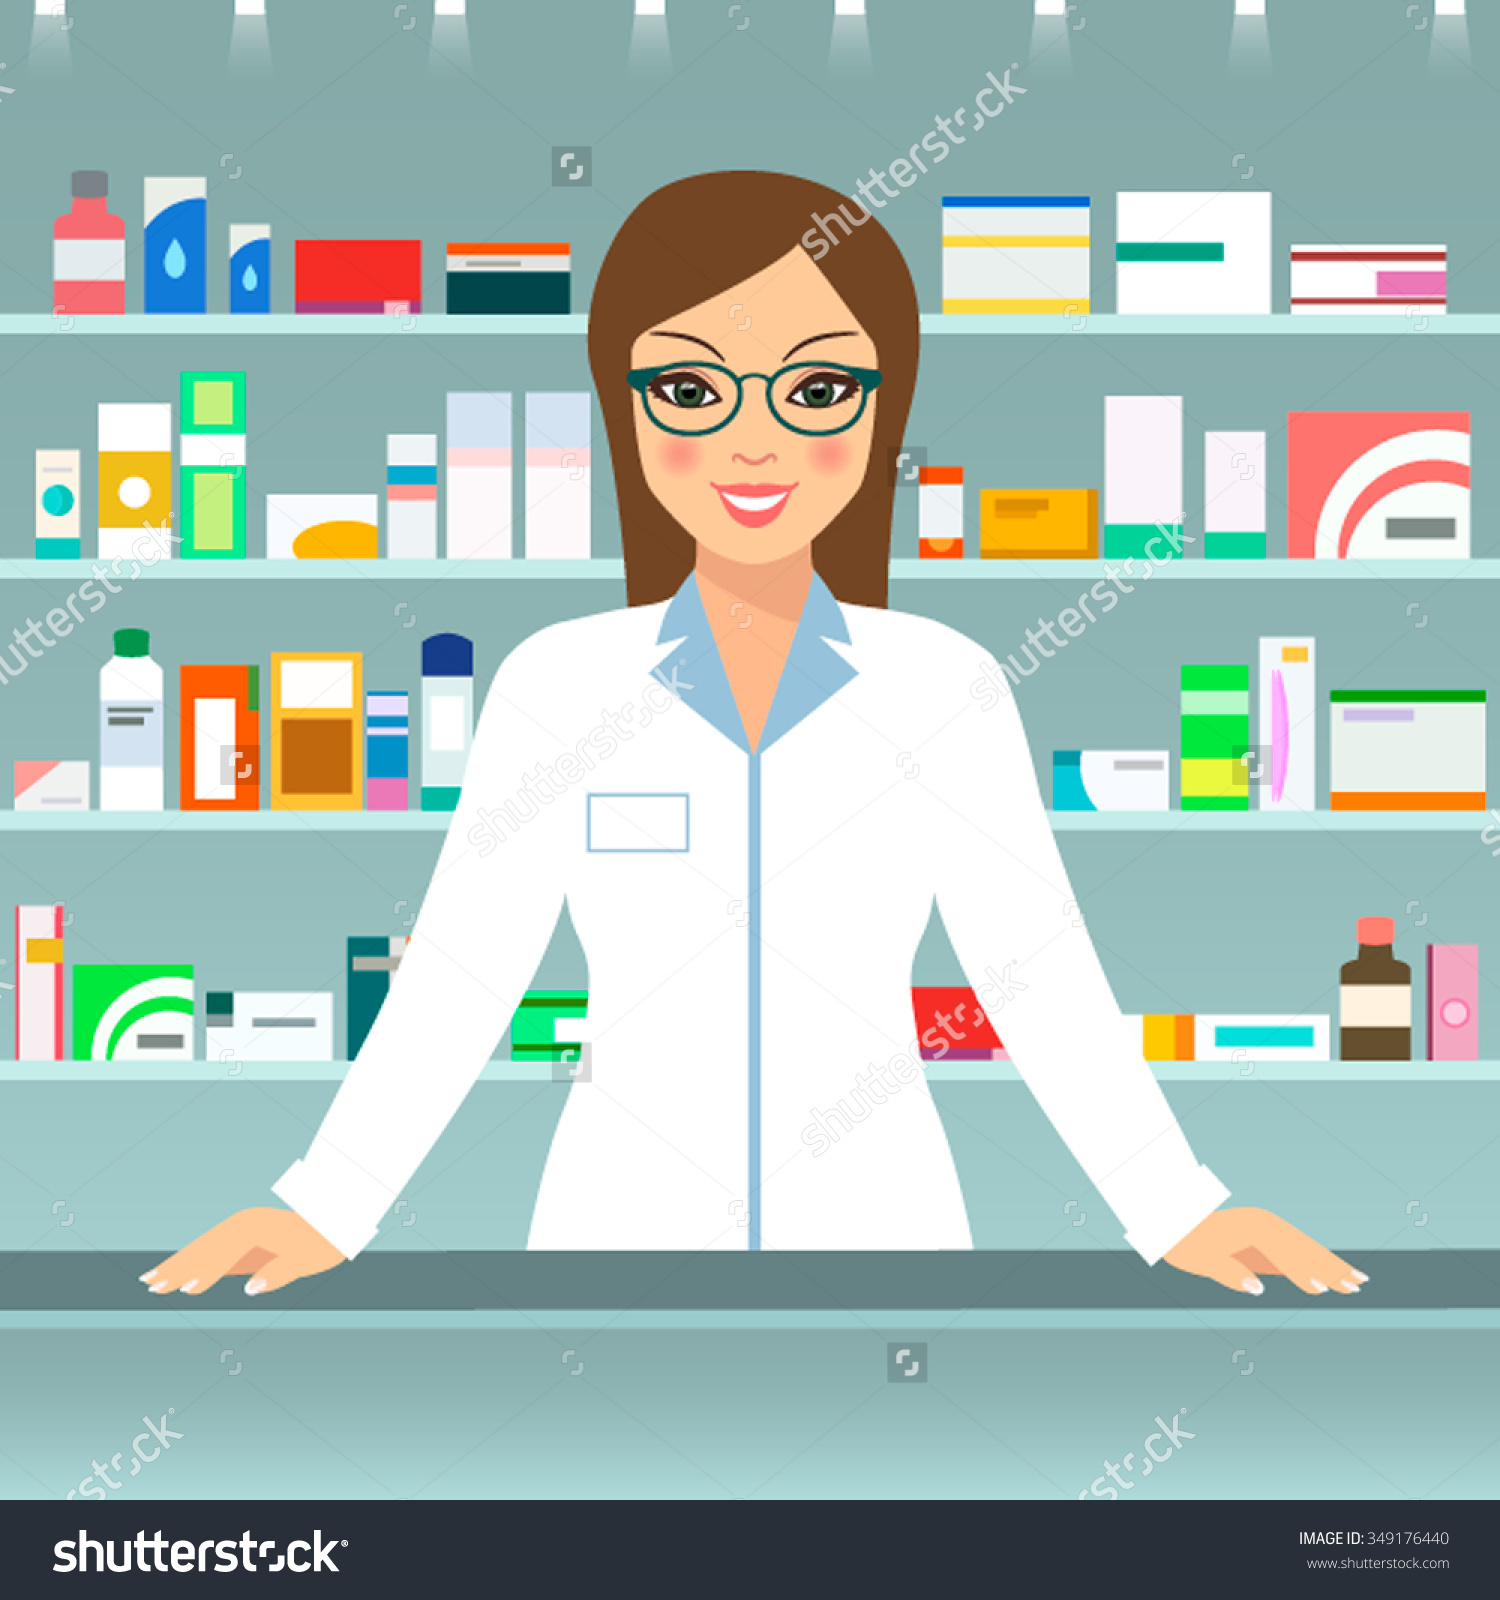 Woman pharmacist free collection. Cashier clipart female